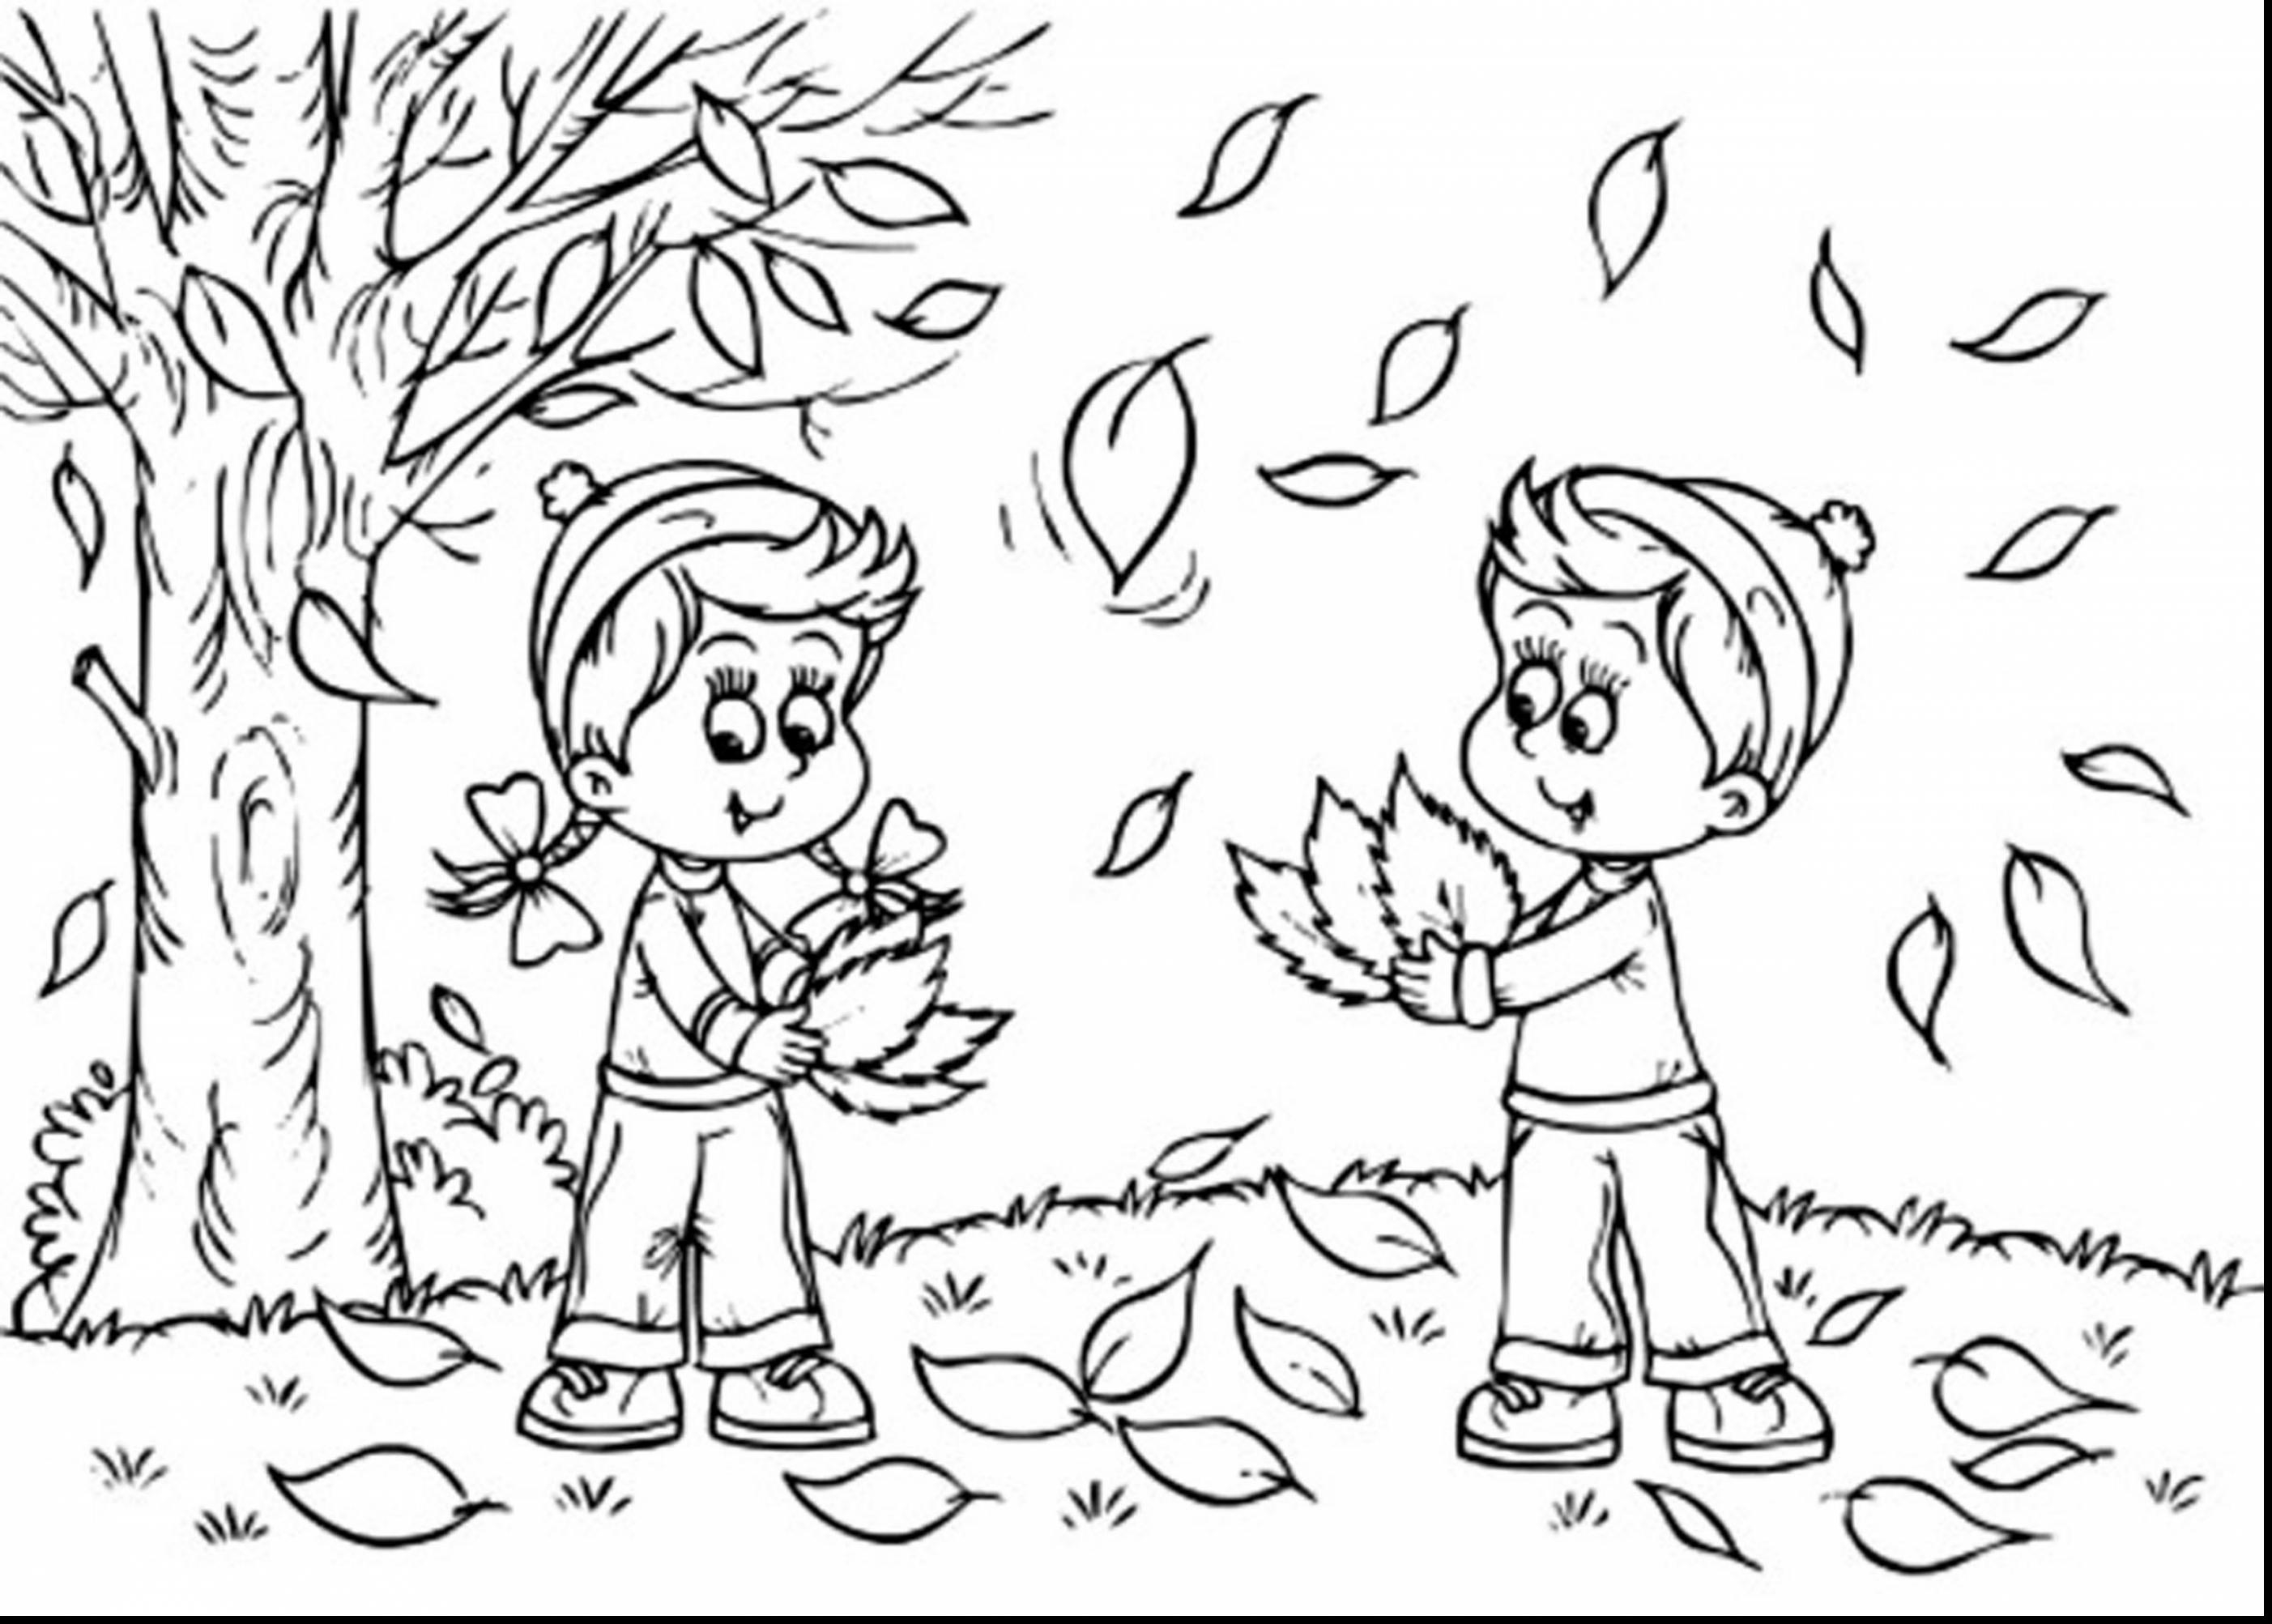 fall coloring pages - kindergarten fall coloring pages superb fall landscape coloring page with free fall coloring pages coloring pages disney